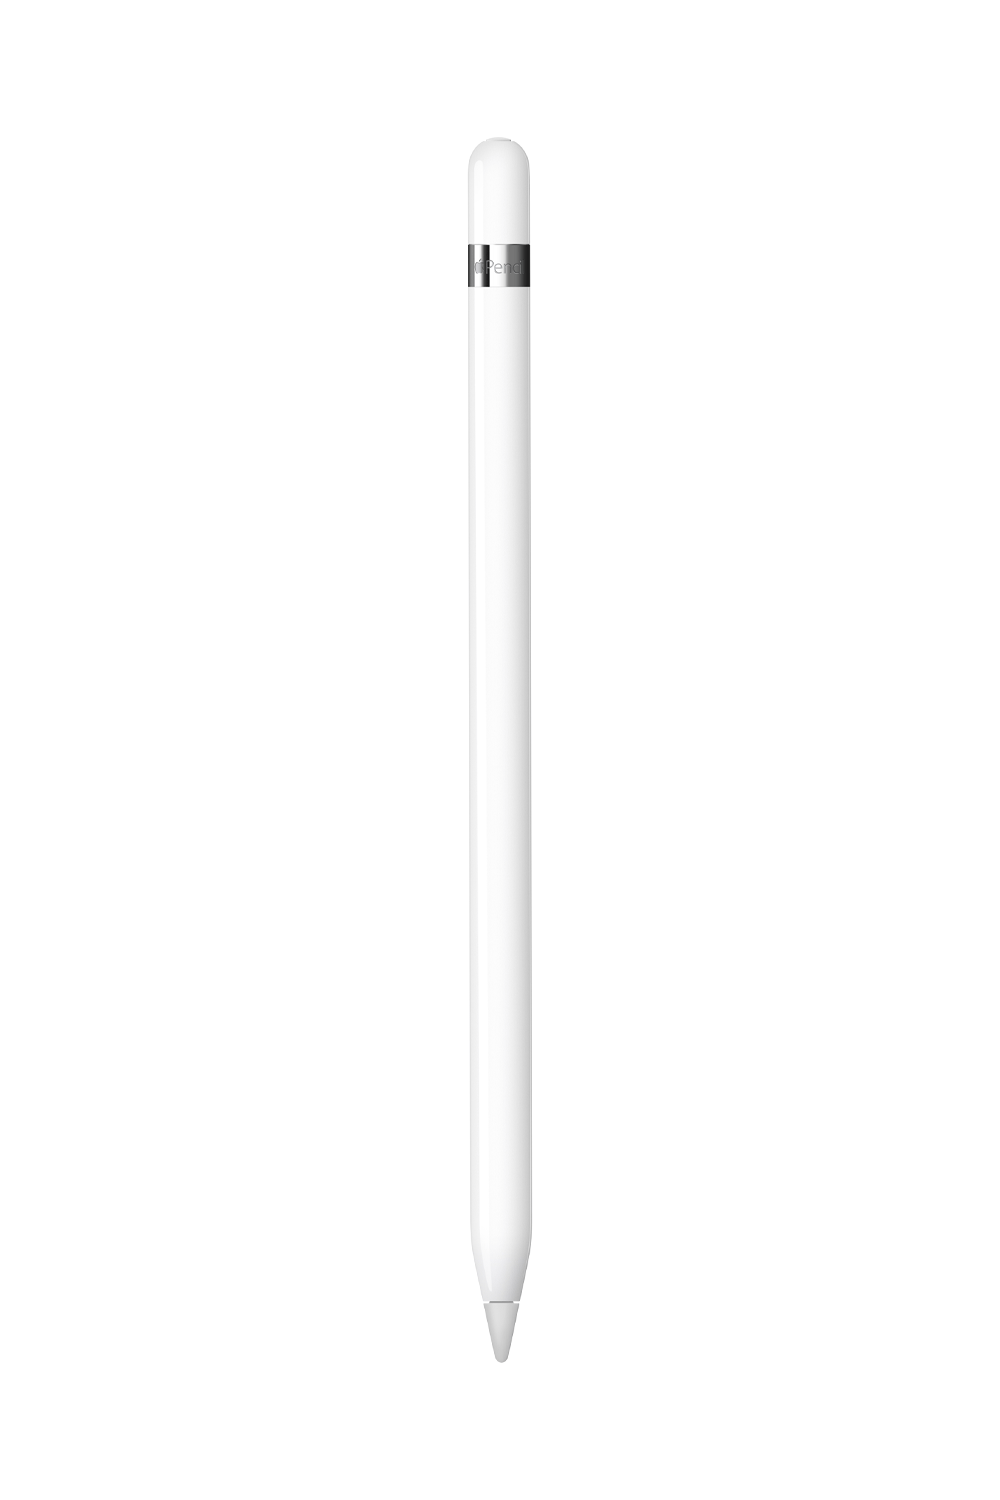 Apple Pencil (1st Generation) - QuickPantry